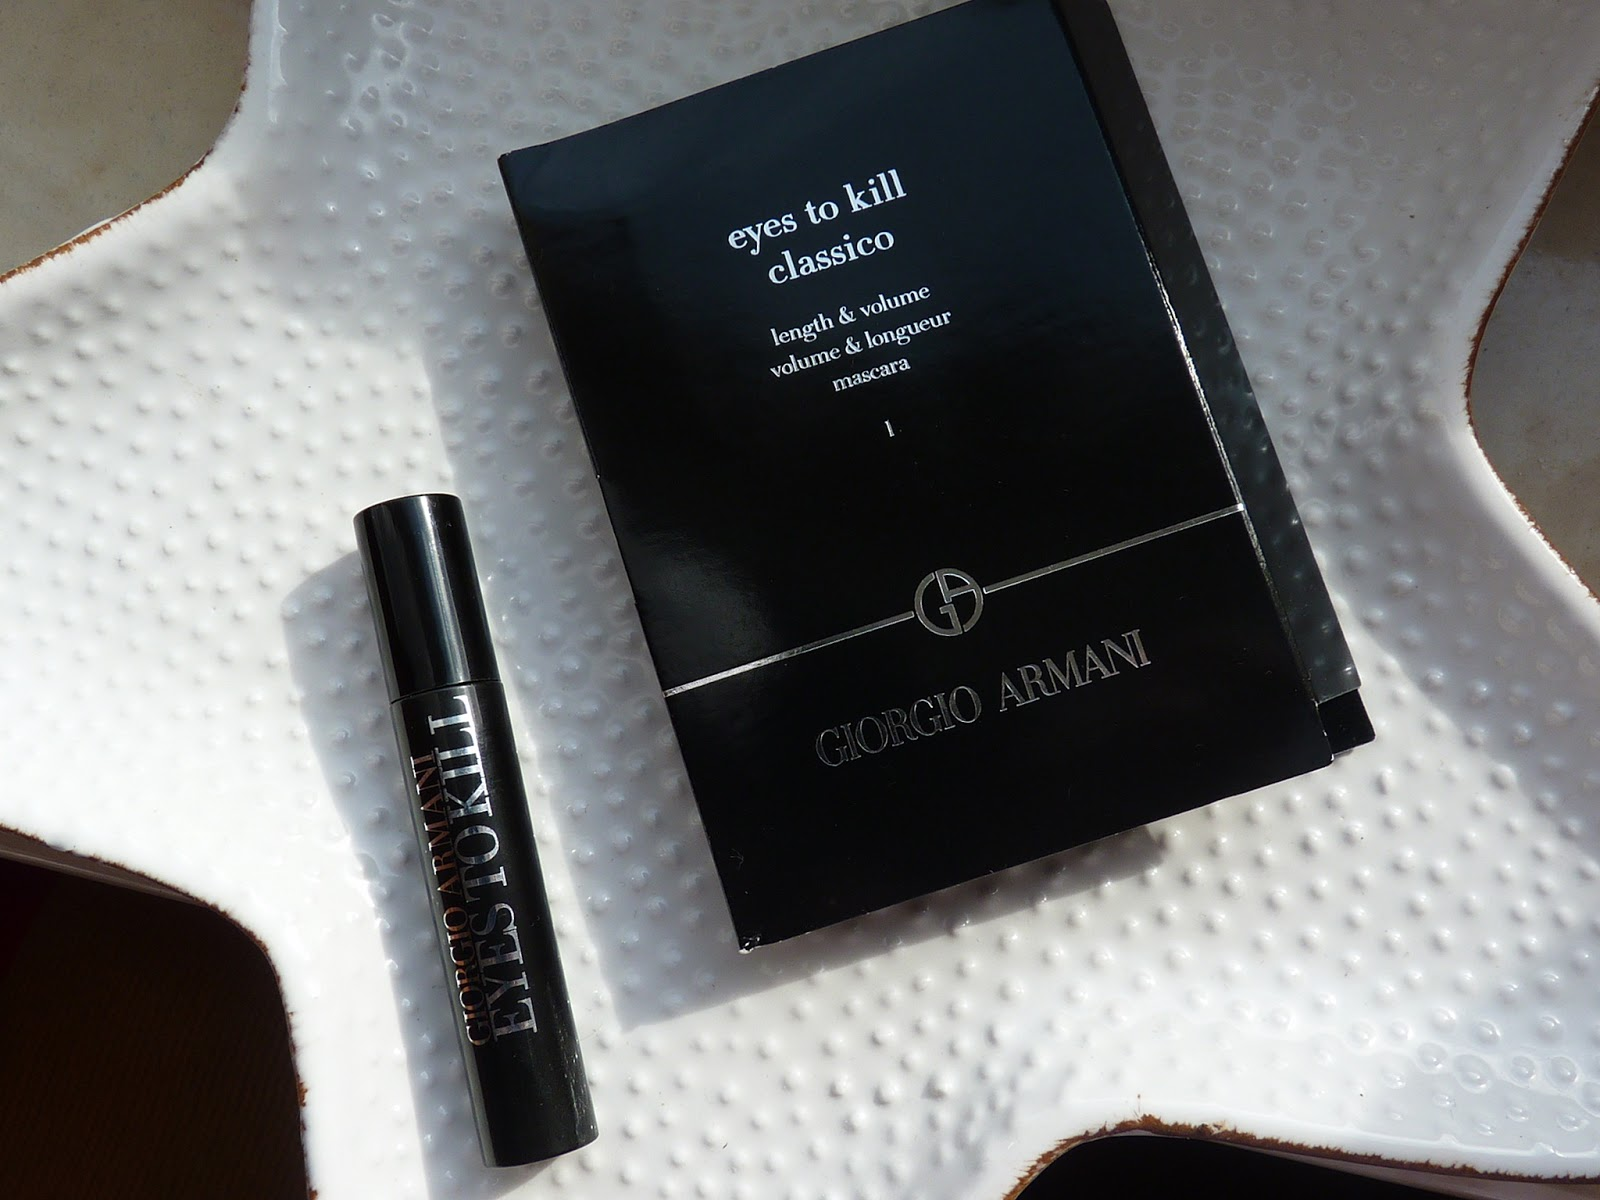 Giorgio Armani Eyes to kill mascara / lenght & volume - test miniatury tuszu do rzęs